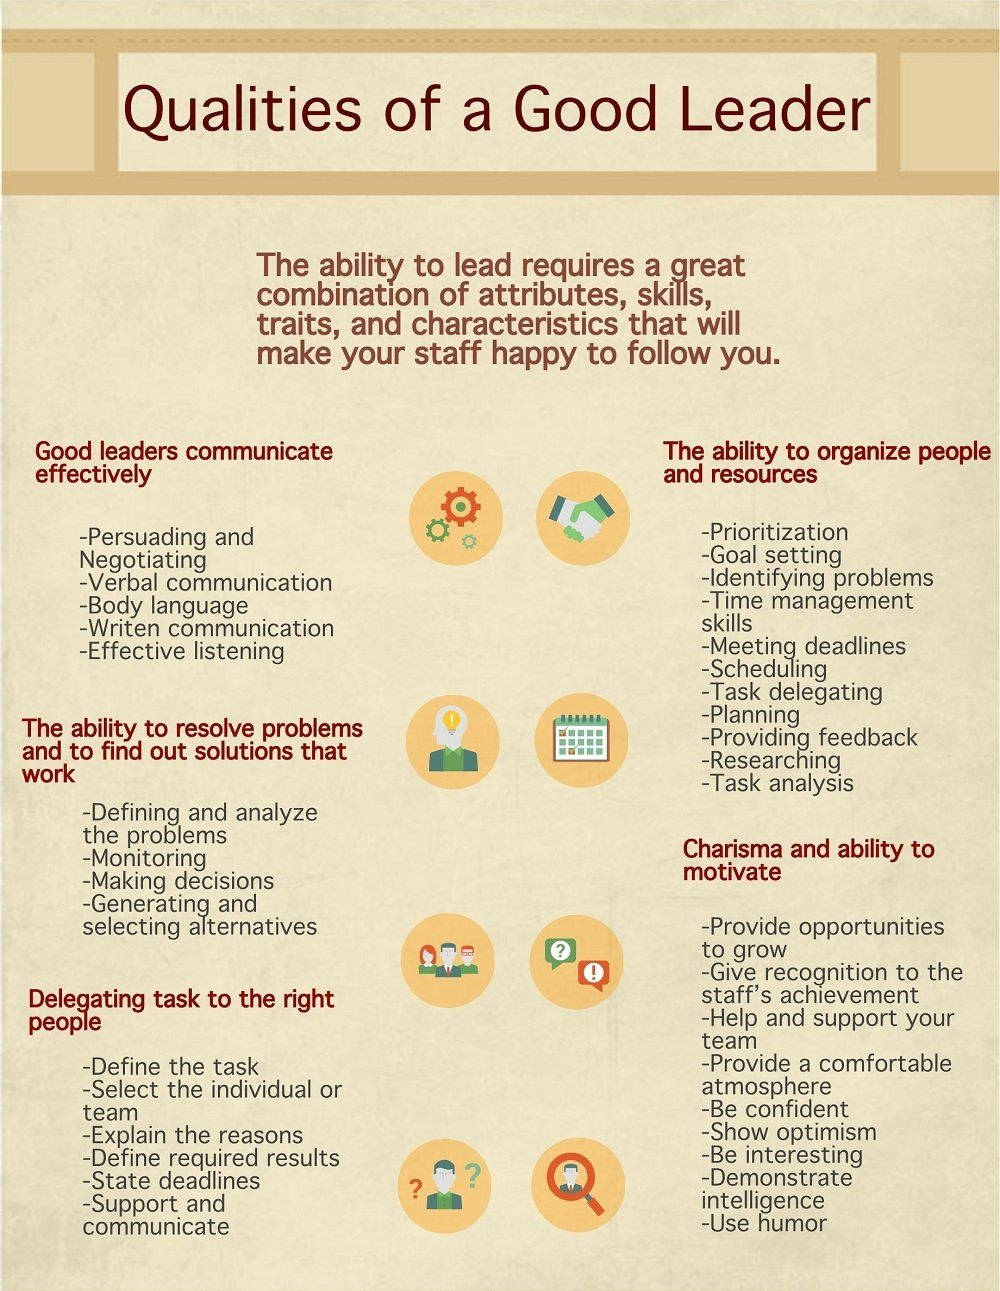 Qualities Of a Good Leader Characteristics & Attributes